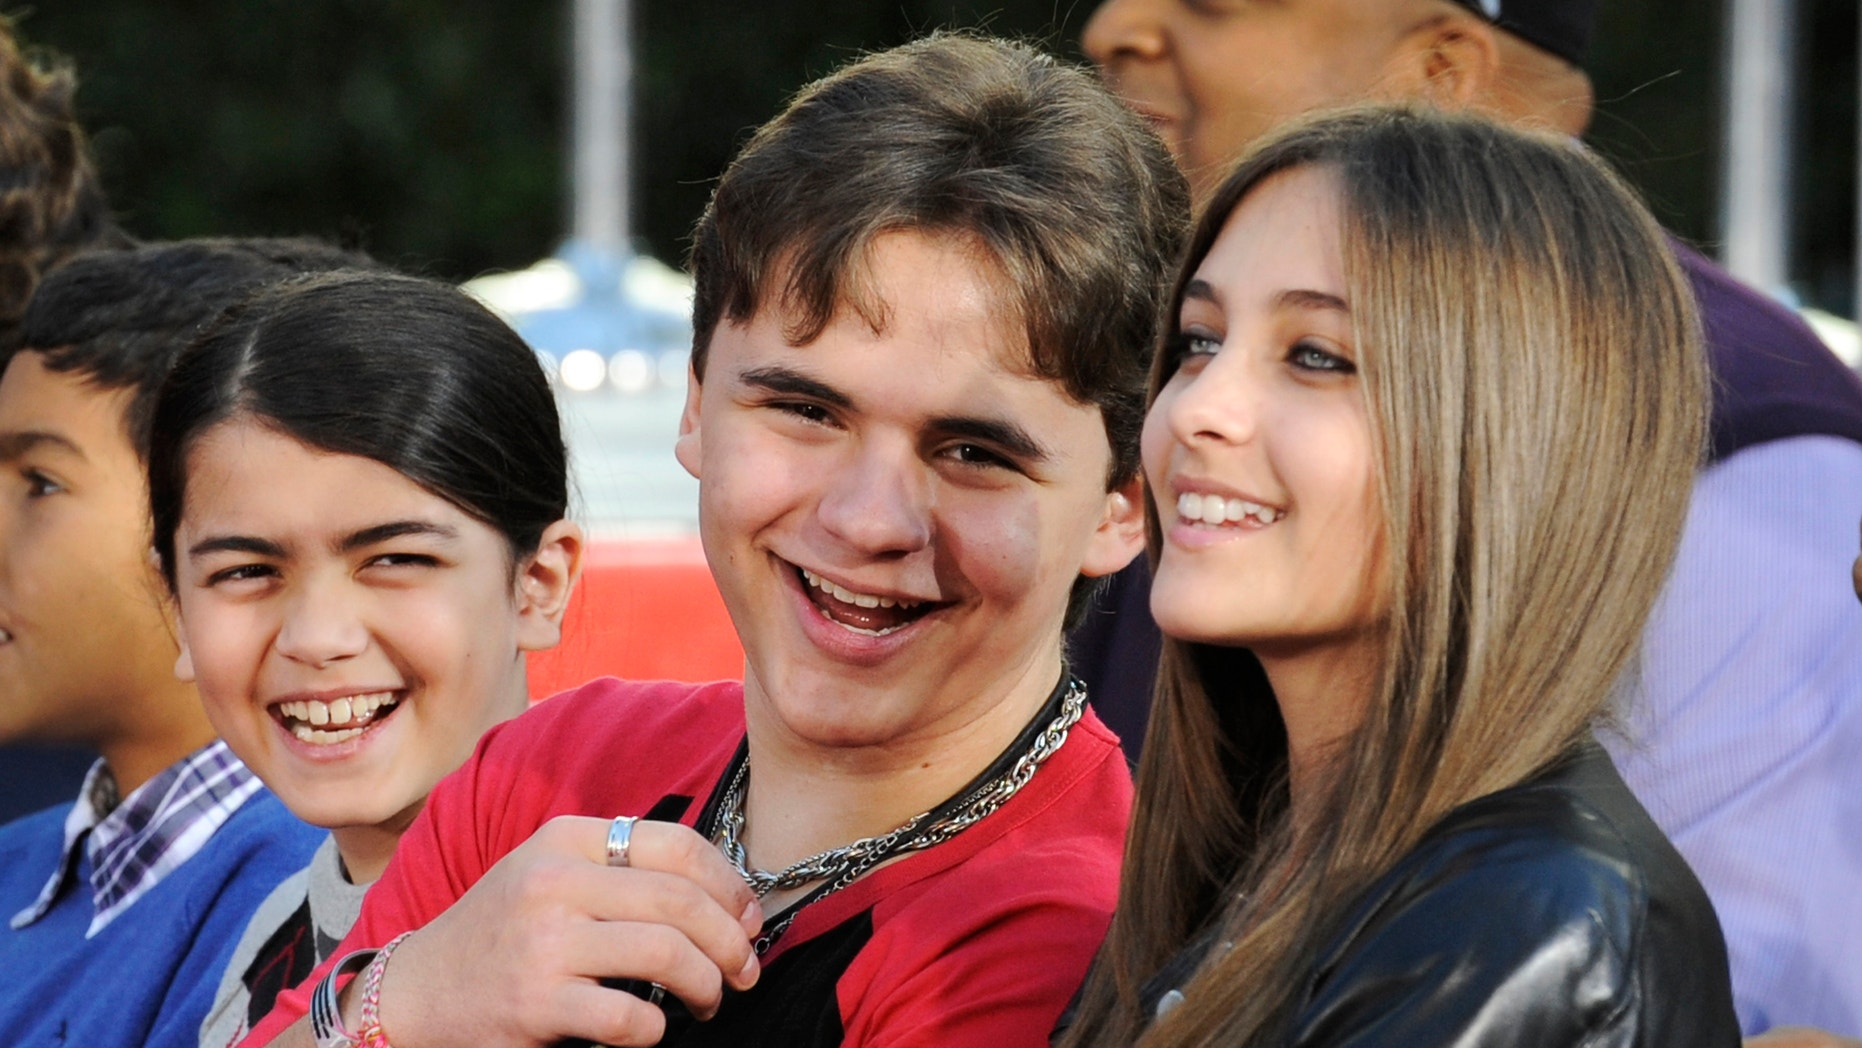 Paris and Prince with their younger brother Blanket.